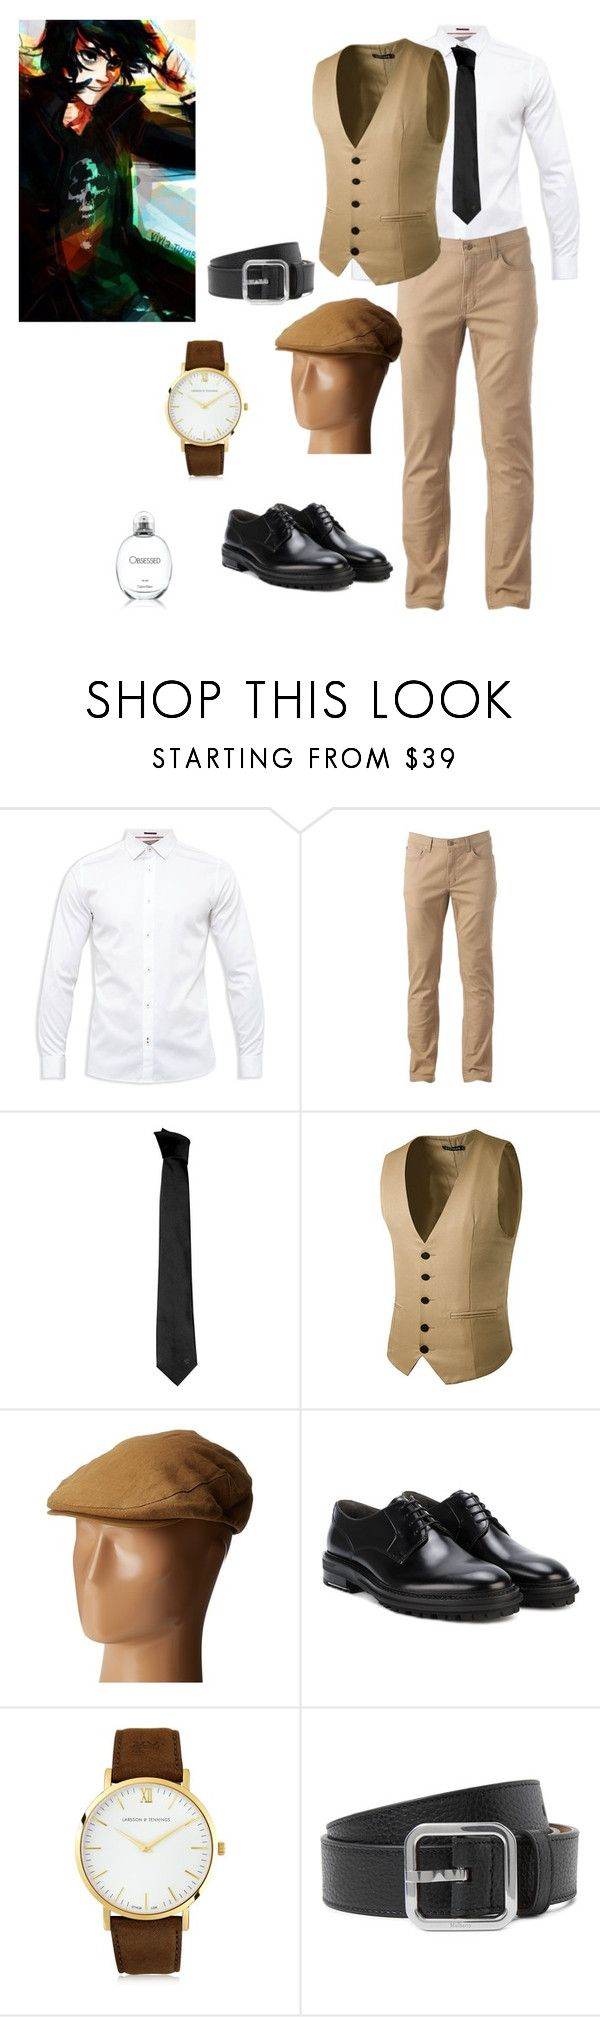 """""""nico di angelo 1920s"""" by shyanne-andrade ❤ liked on Polyvore featuring Ted Baker, Urban Pipeline, Versace, Brixton, Nico, Lanvin, Larsson & Jennings, Calvin Klein, men's fashion and menswear"""